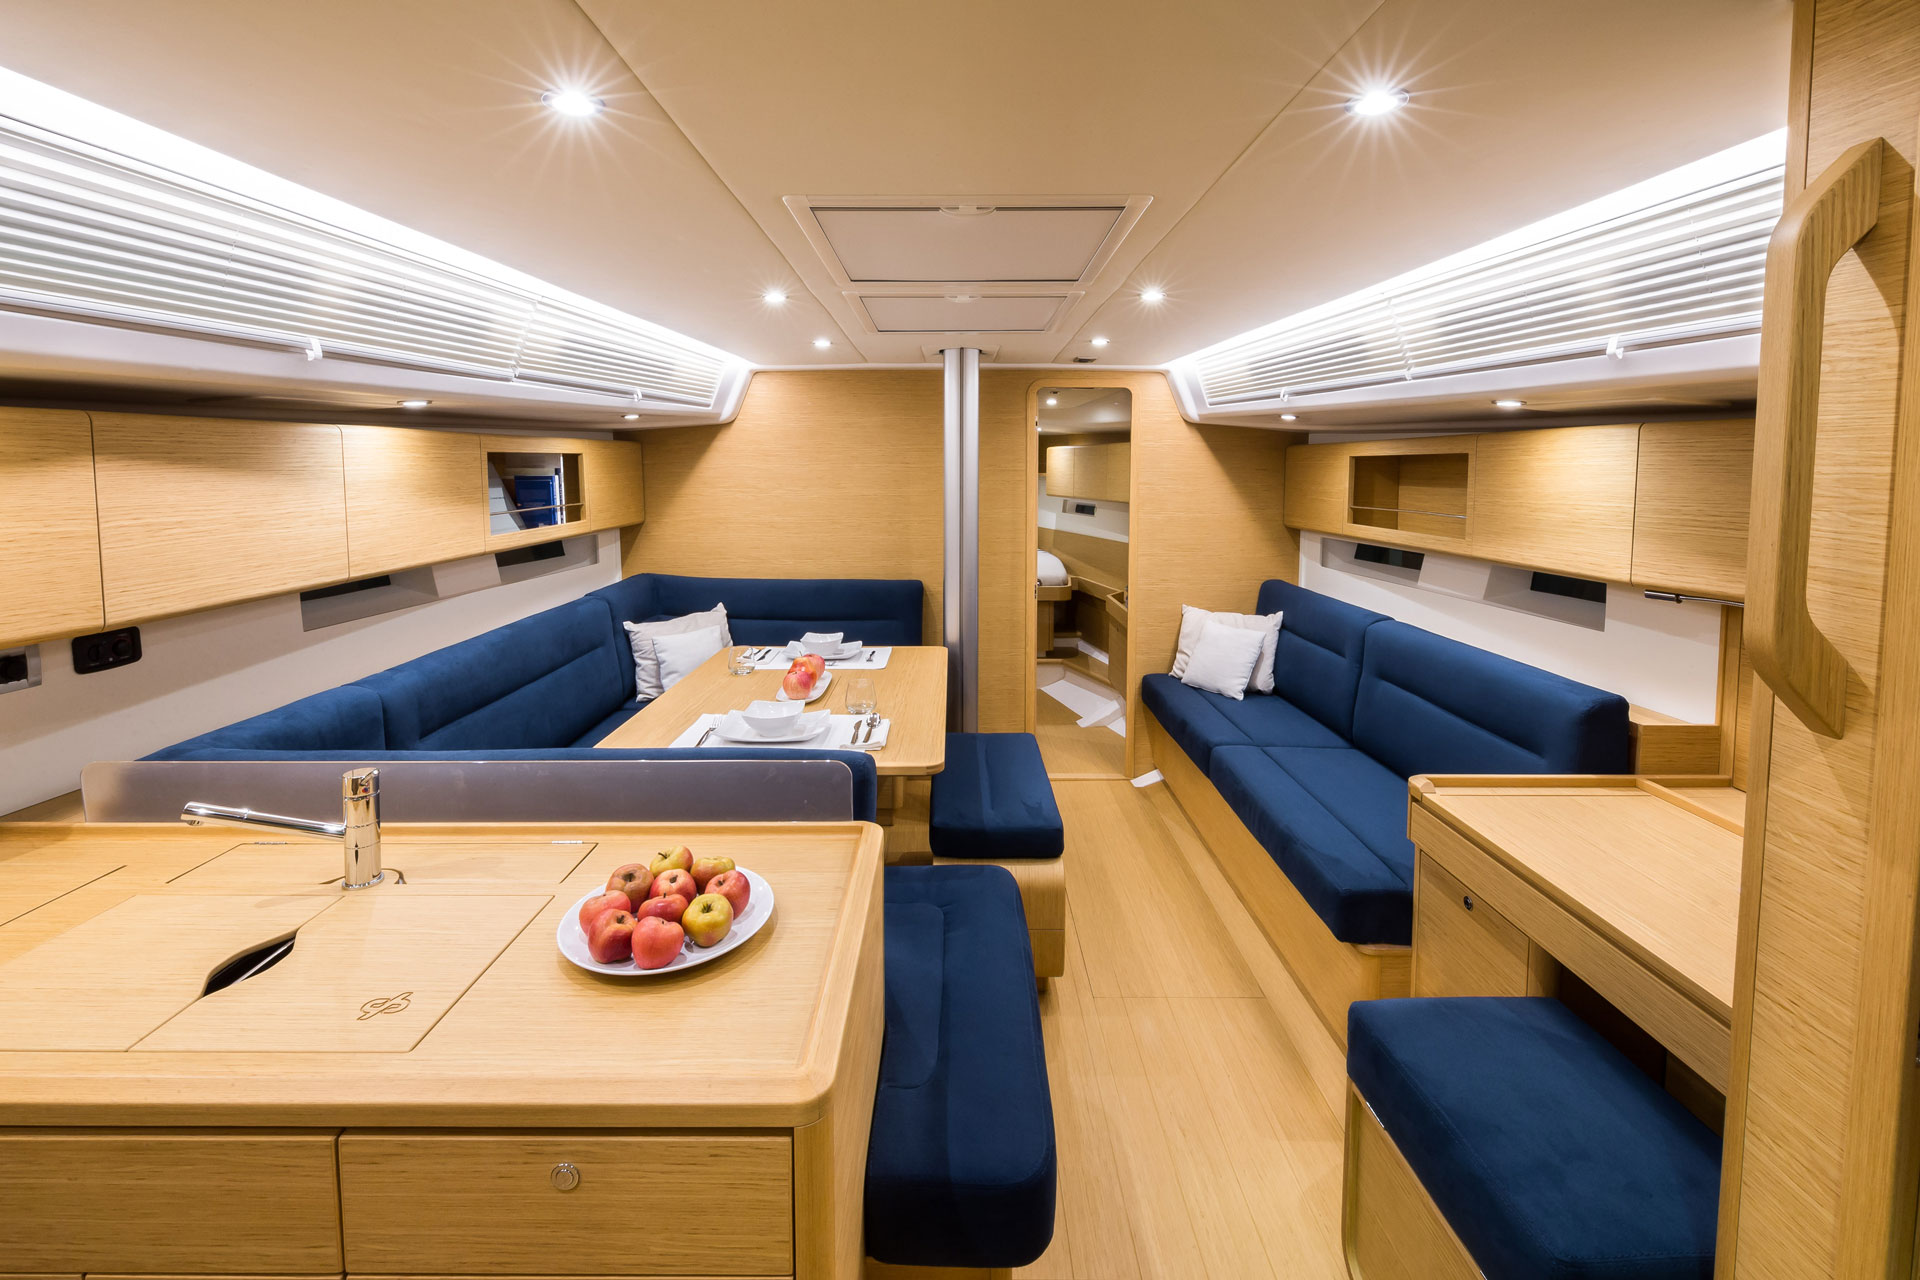 Grand_Soleil-Performance-47-California_Yacht_Imports-interior-1